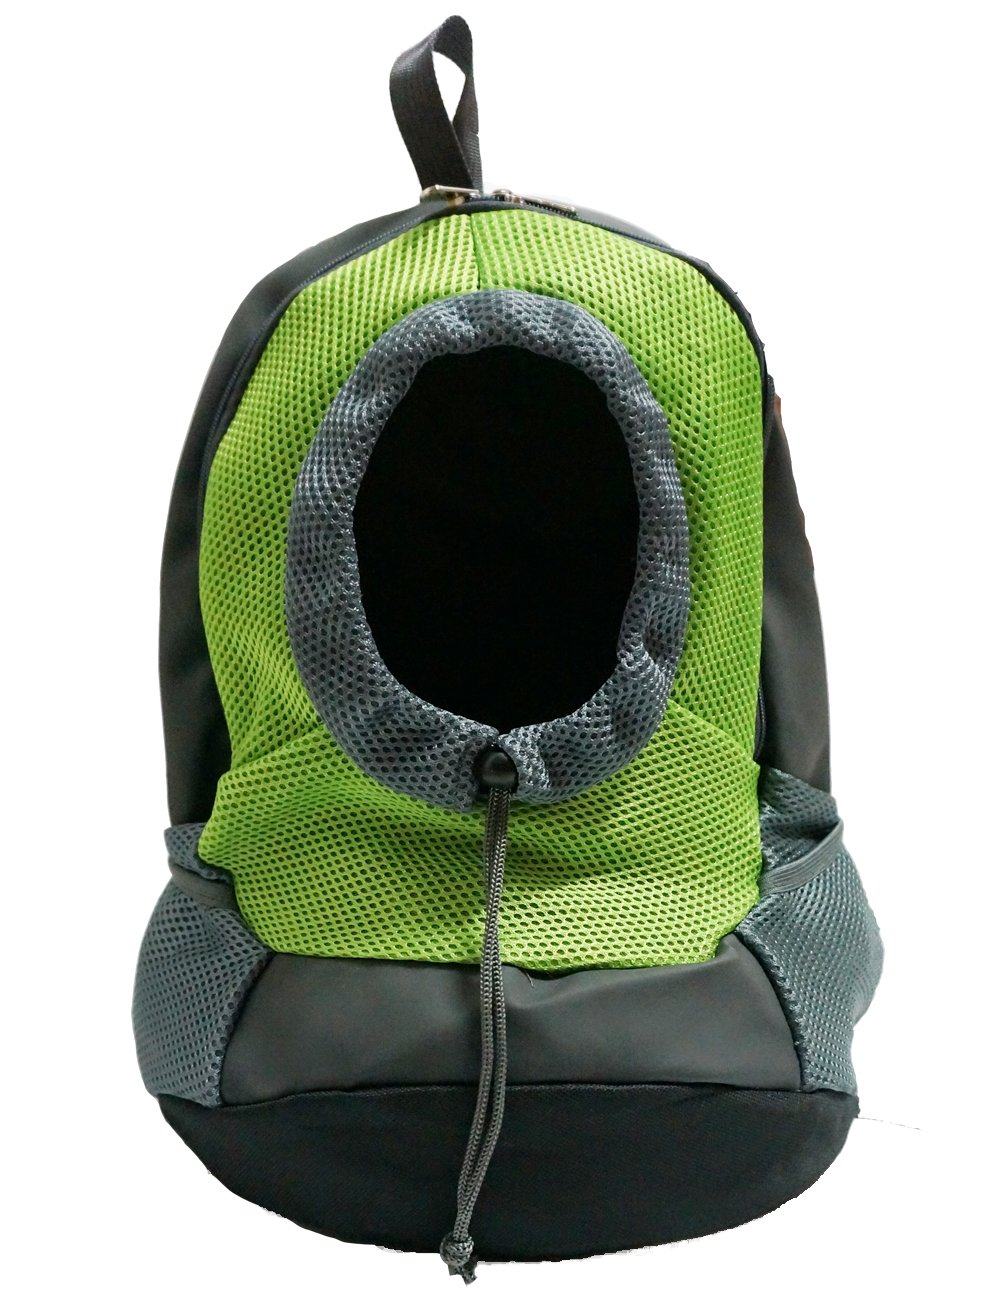 Pet Carrier Portable Outdoor Travel Backpack for Small Dog or Cat Use (Green) | Size: 16.53''(Length) x 11.41''(Bottom Length) x 6.69'' (Side Width) (suitable for pet under 3.5kgs = 7.7lbs)